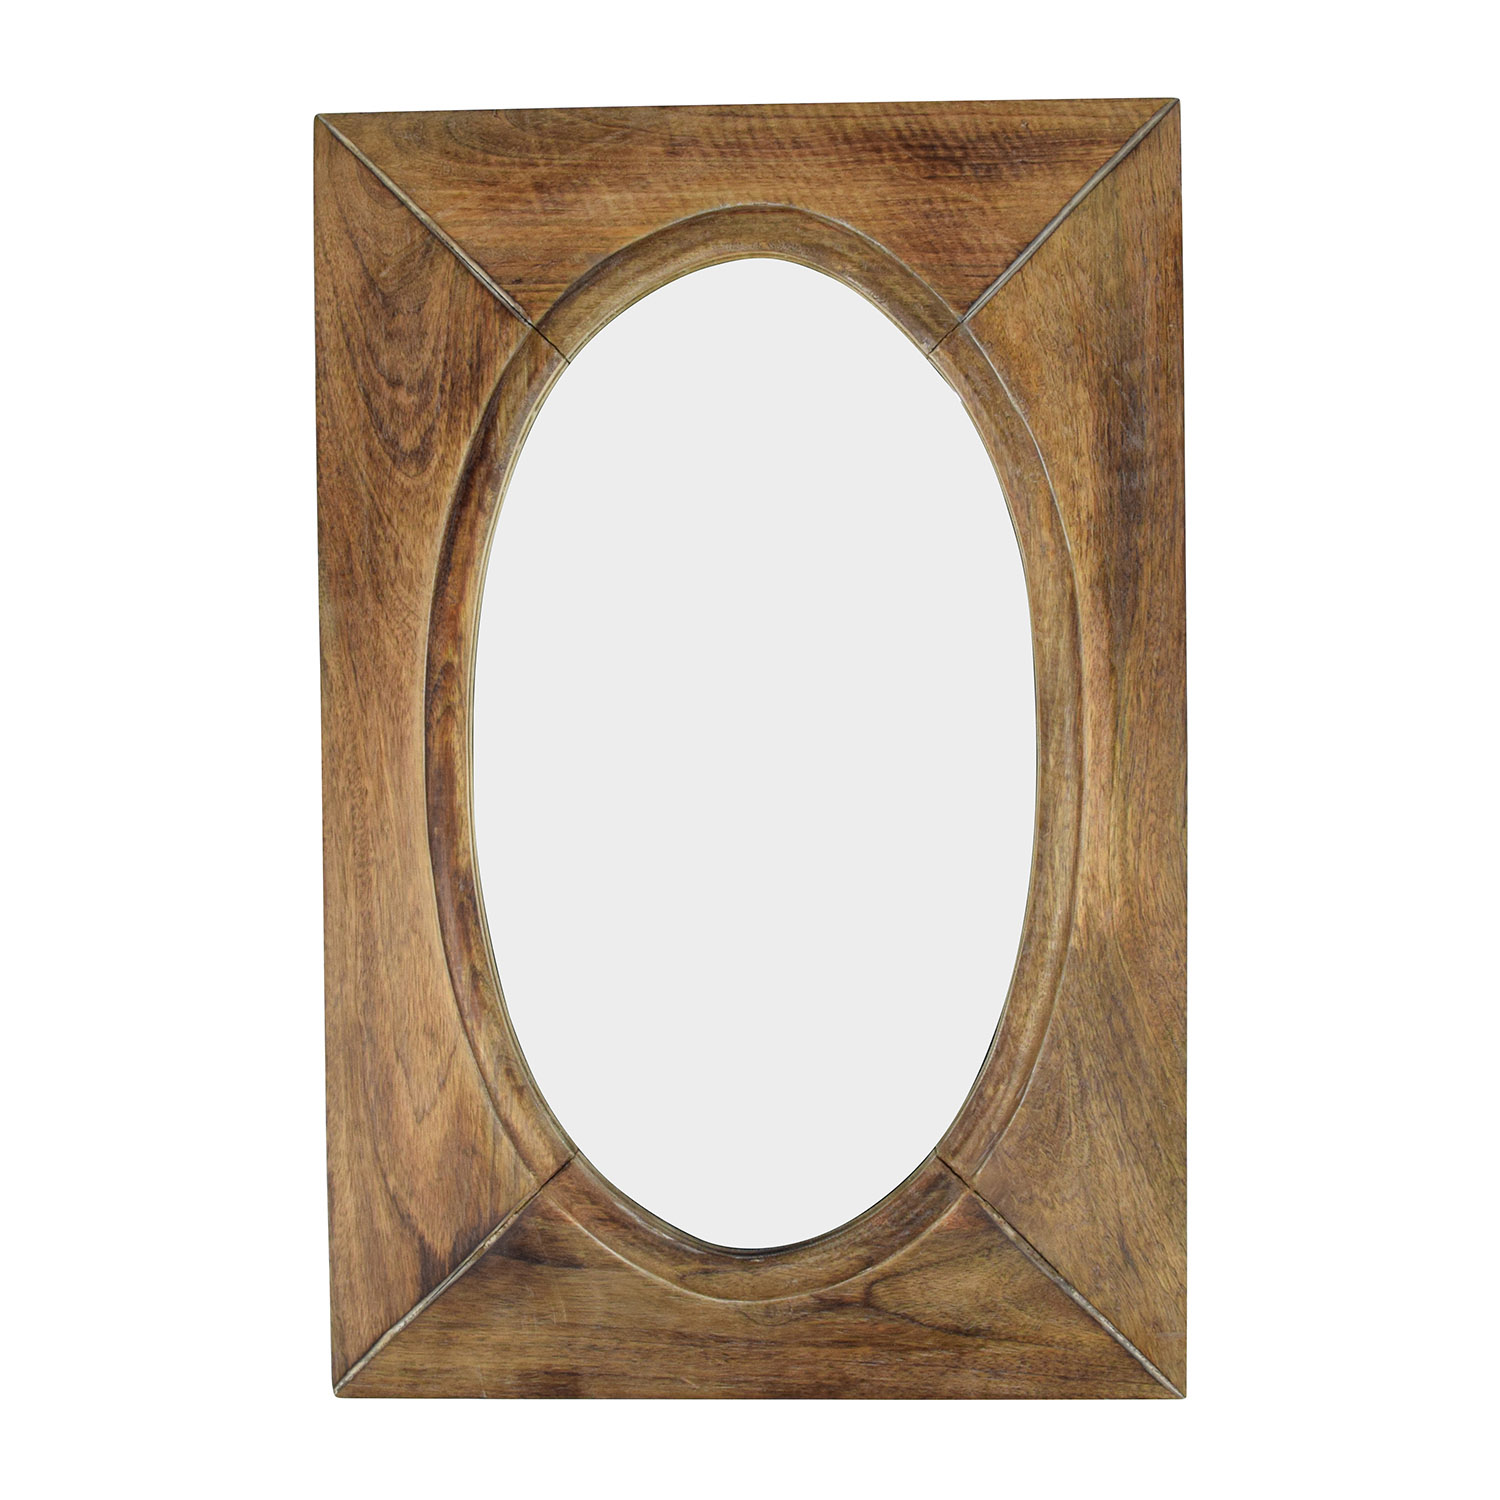 World Market Rustic Wood Shandi Oval Mirror / Mirrors